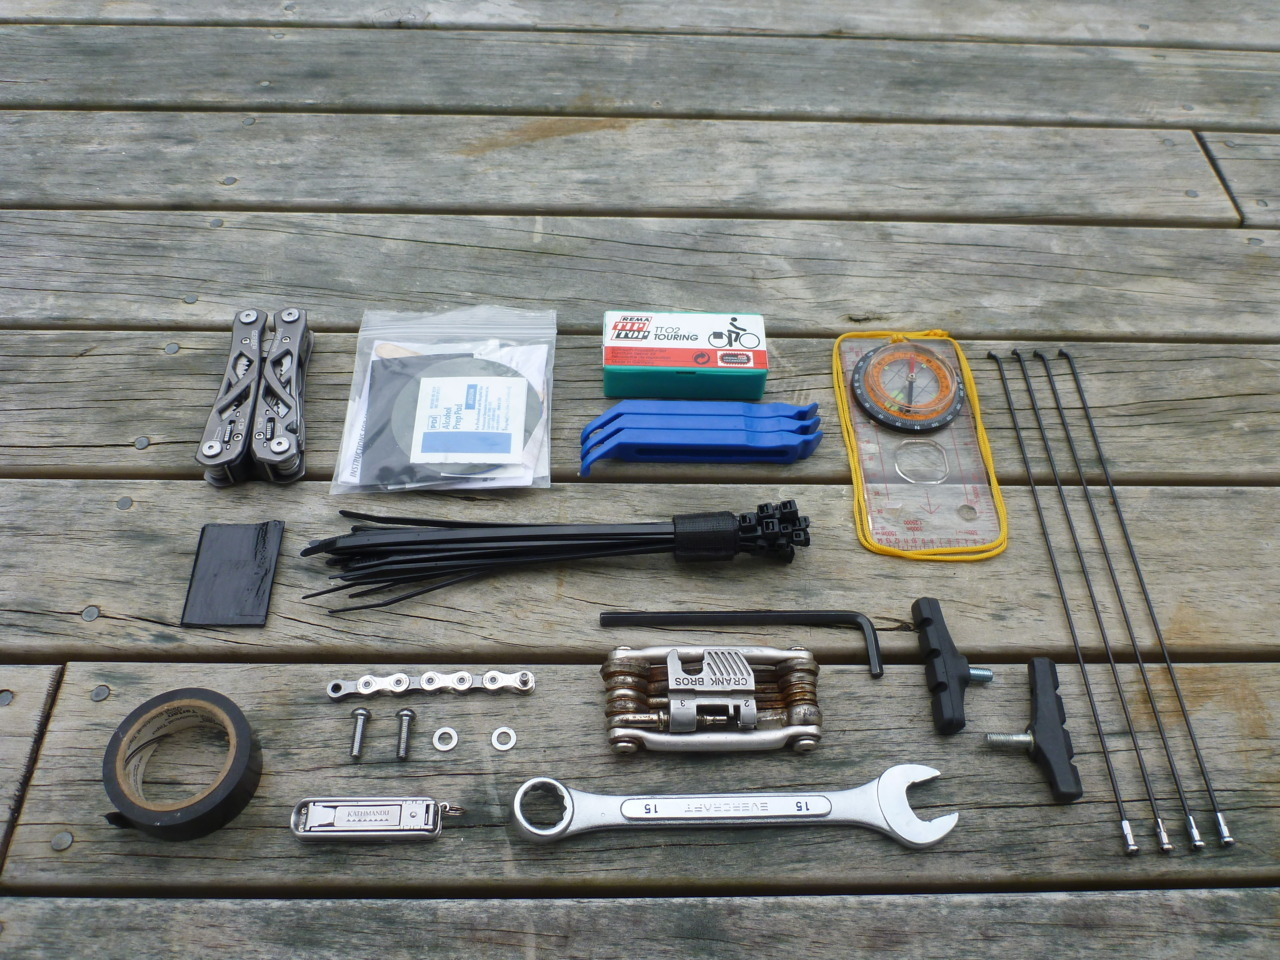 bike tools organized from things organized neatly